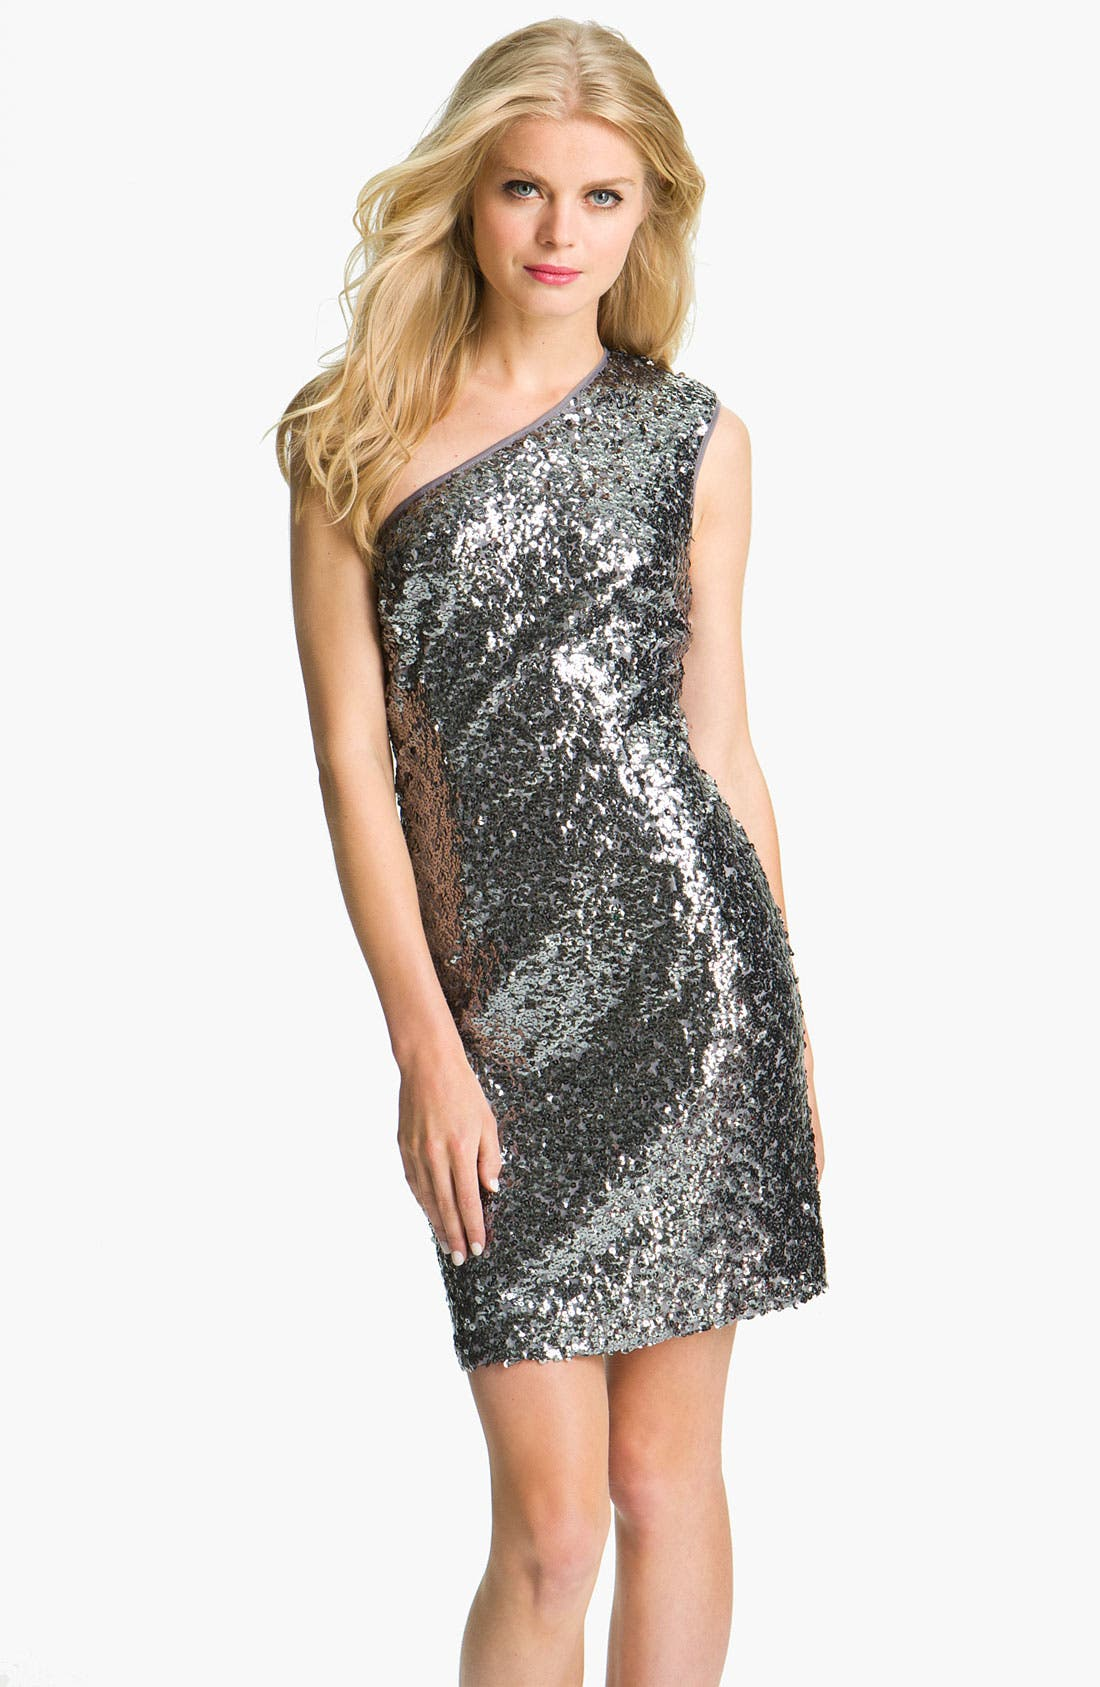 Alternate Image 1 Selected - Adrianna Papell One Shoulder Sequin Dress (Petite)